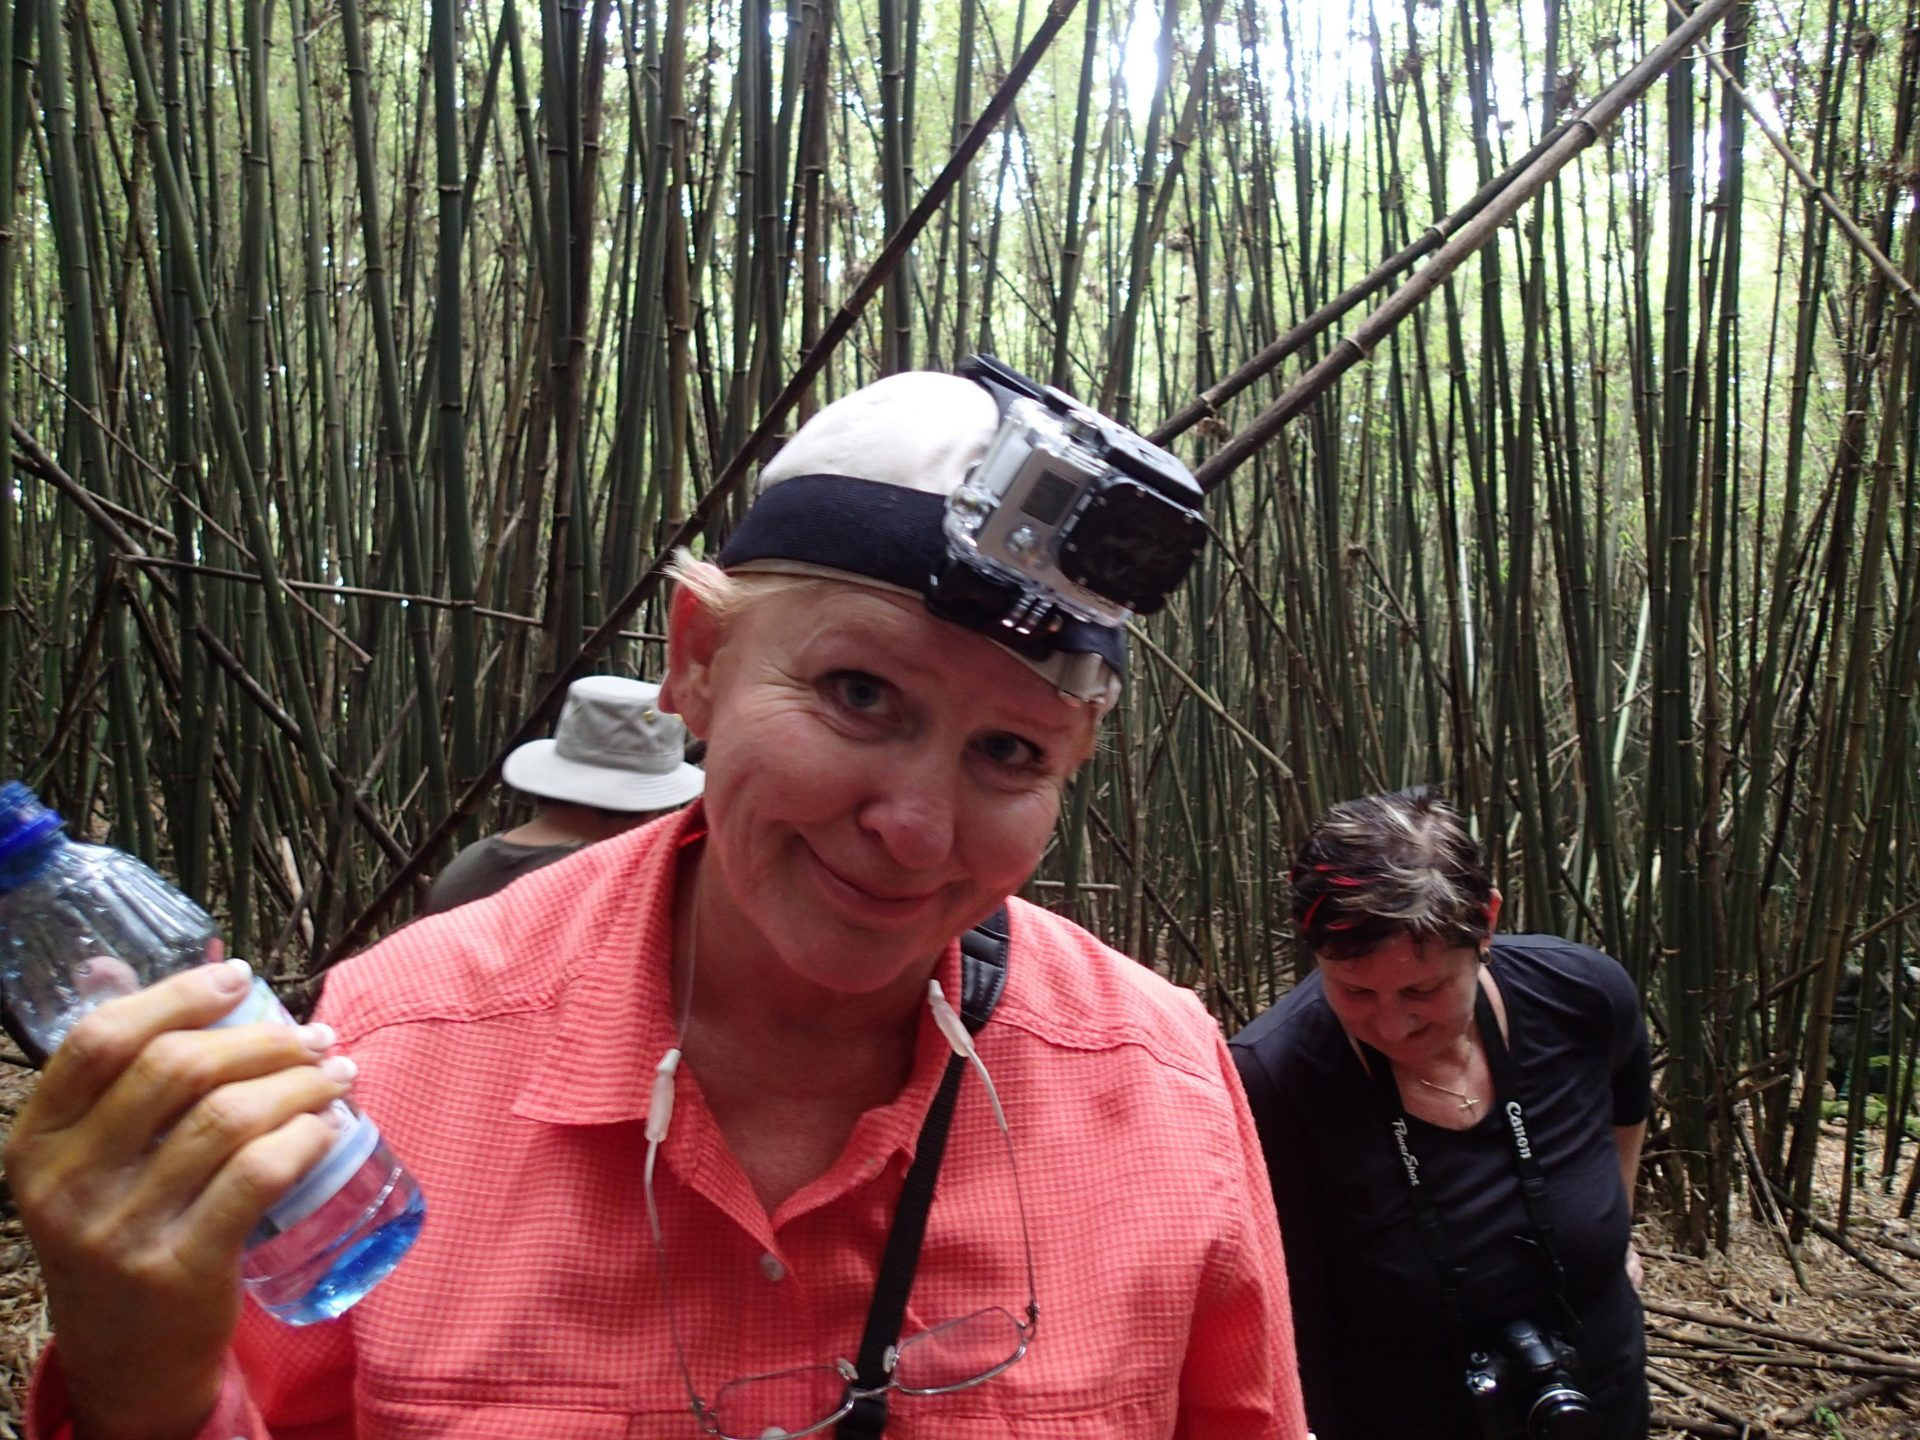 Sandi with a small camera, a Go Pro on her head and her trusty Nikon.  Following gorillas in Rwanda.